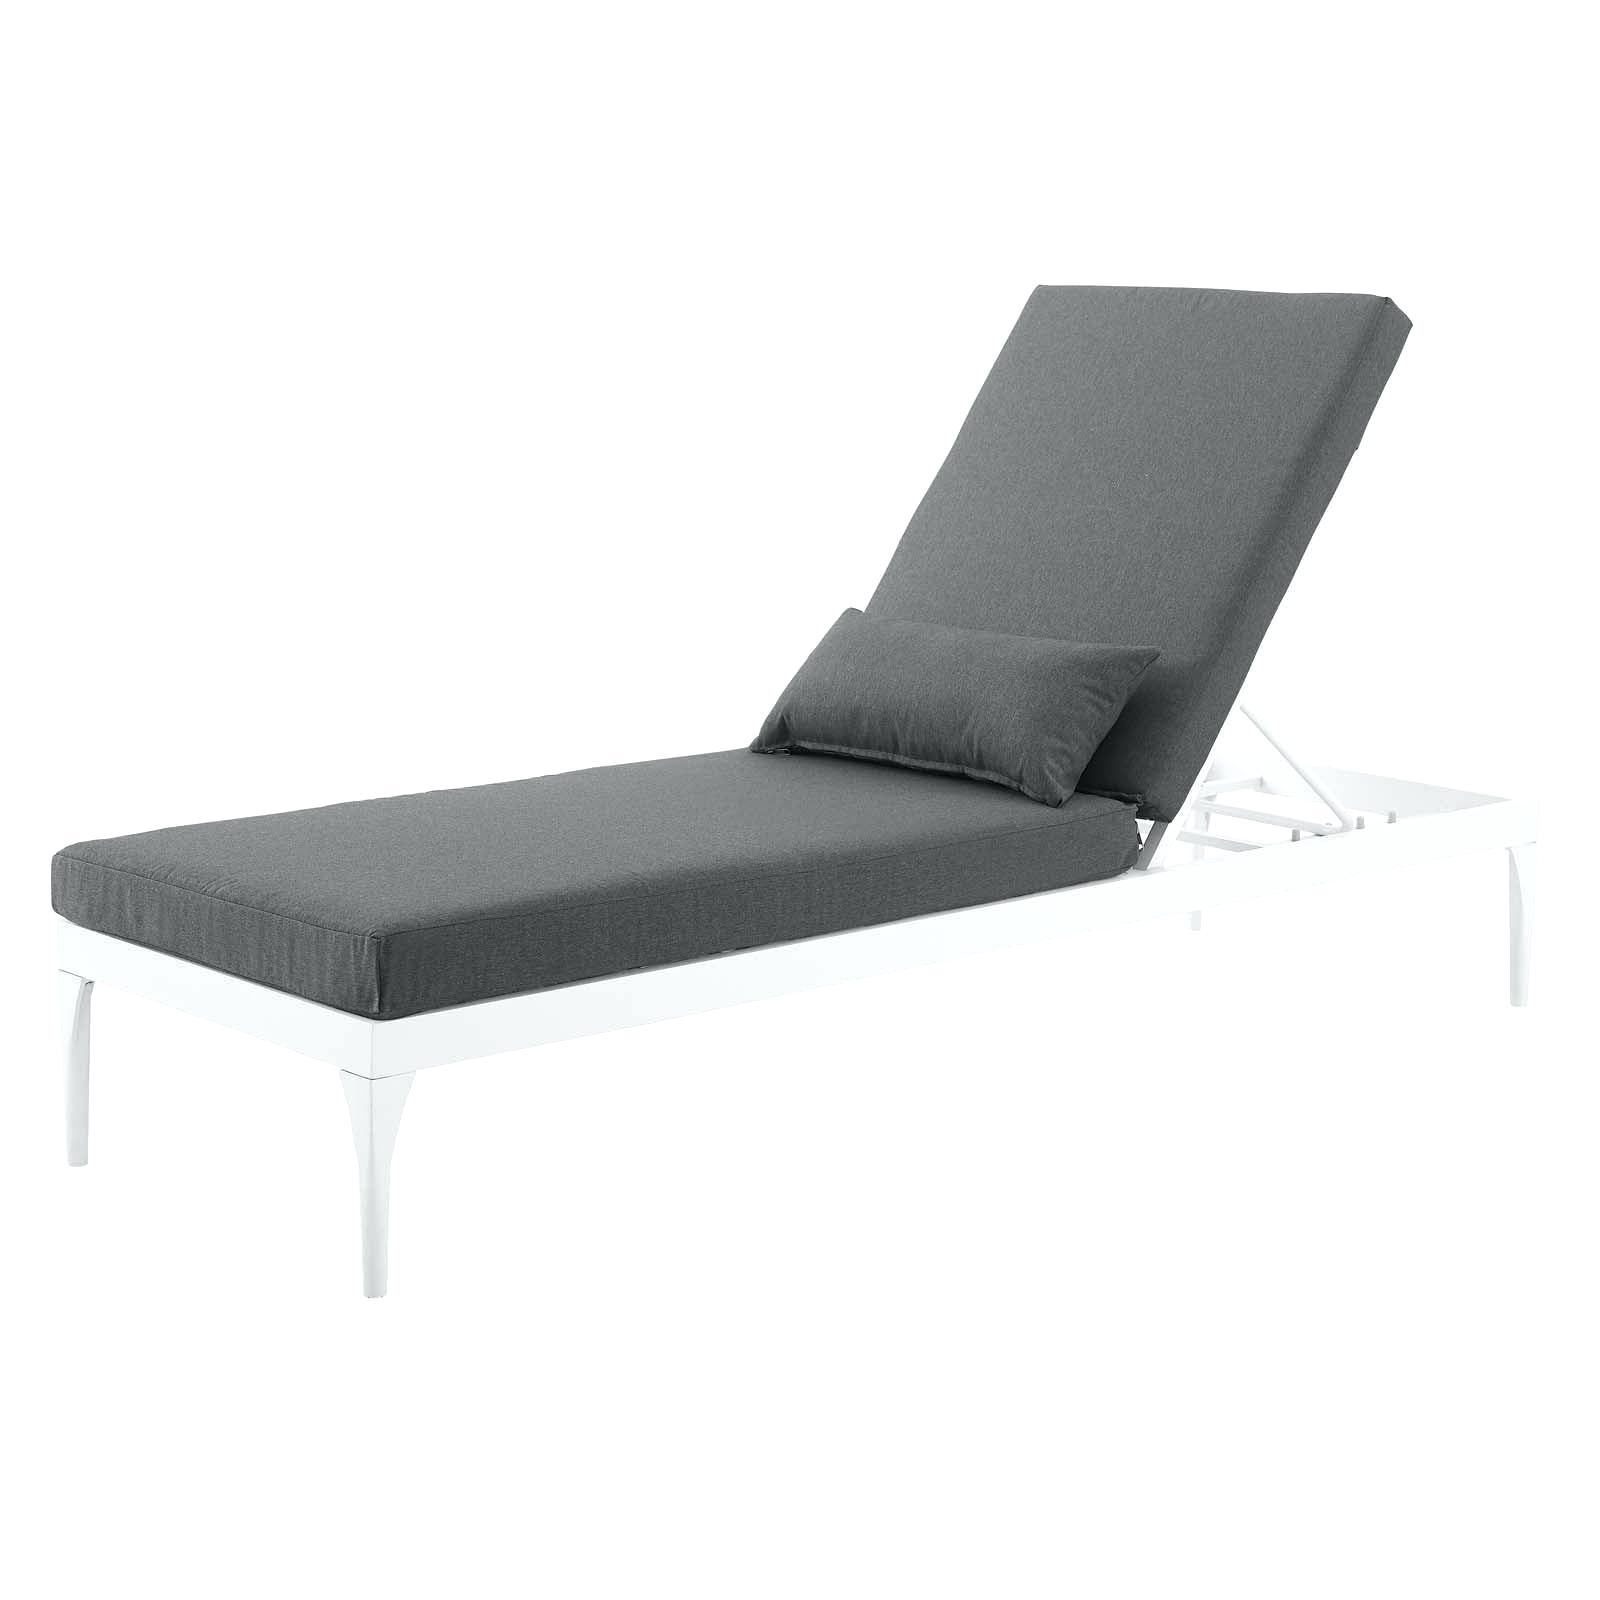 Delectable Aluminum Chaise Lounge Chair Furniture Outdoor Pertaining To Latest Floral Blossom Chaise Lounge Chairs With Cushion (View 15 of 25)